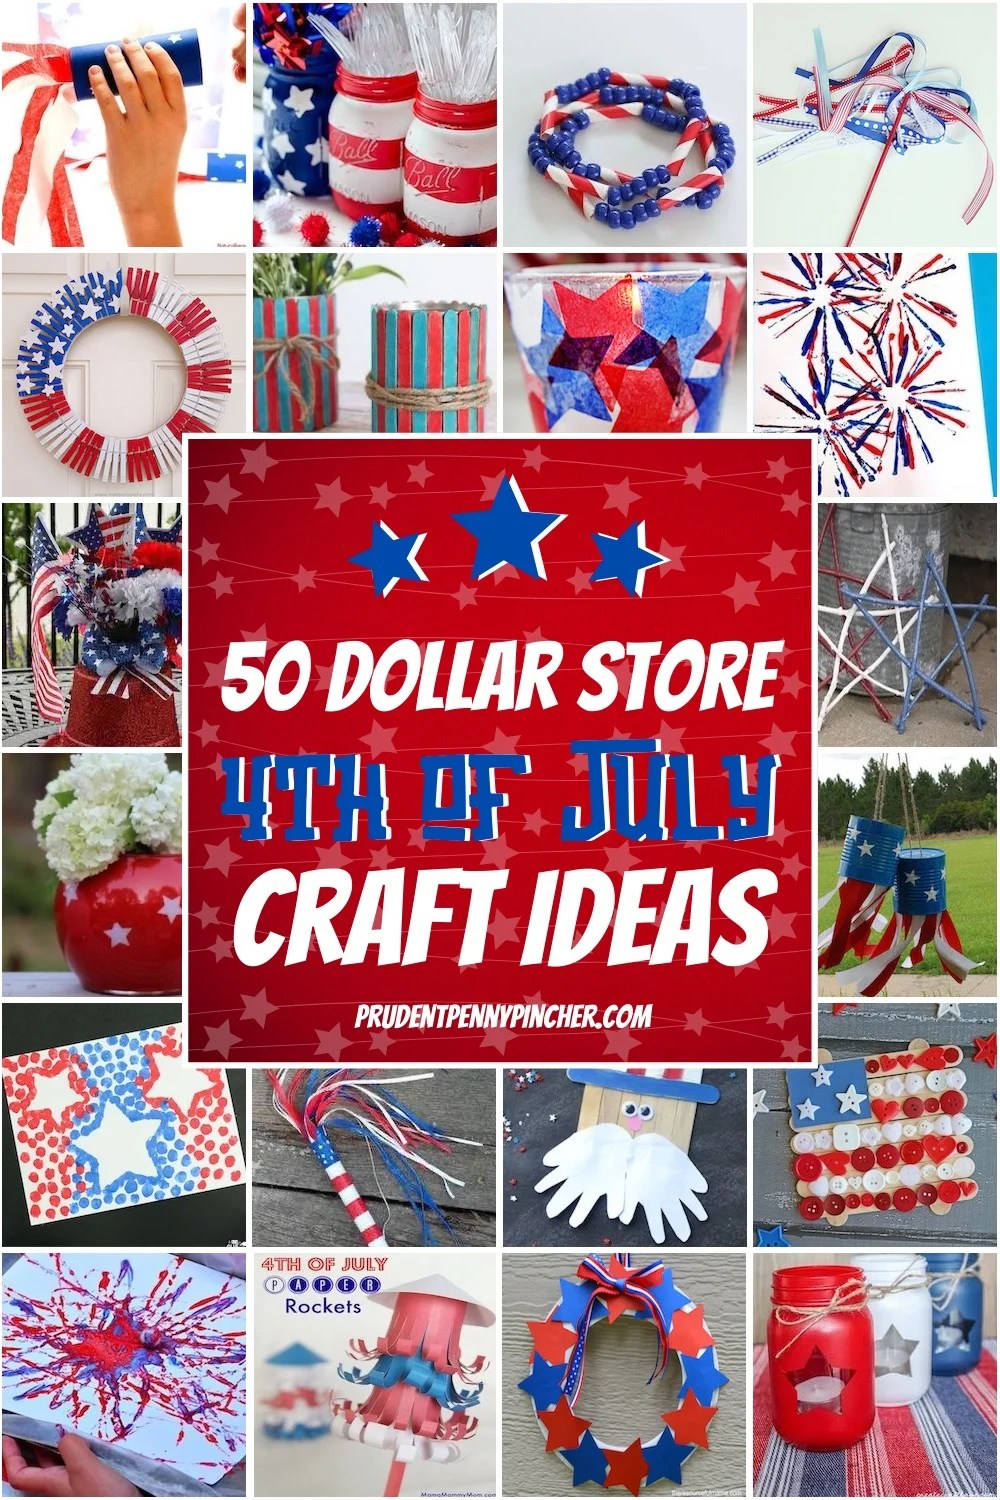 50 Dollar Store 4th of July Crafts